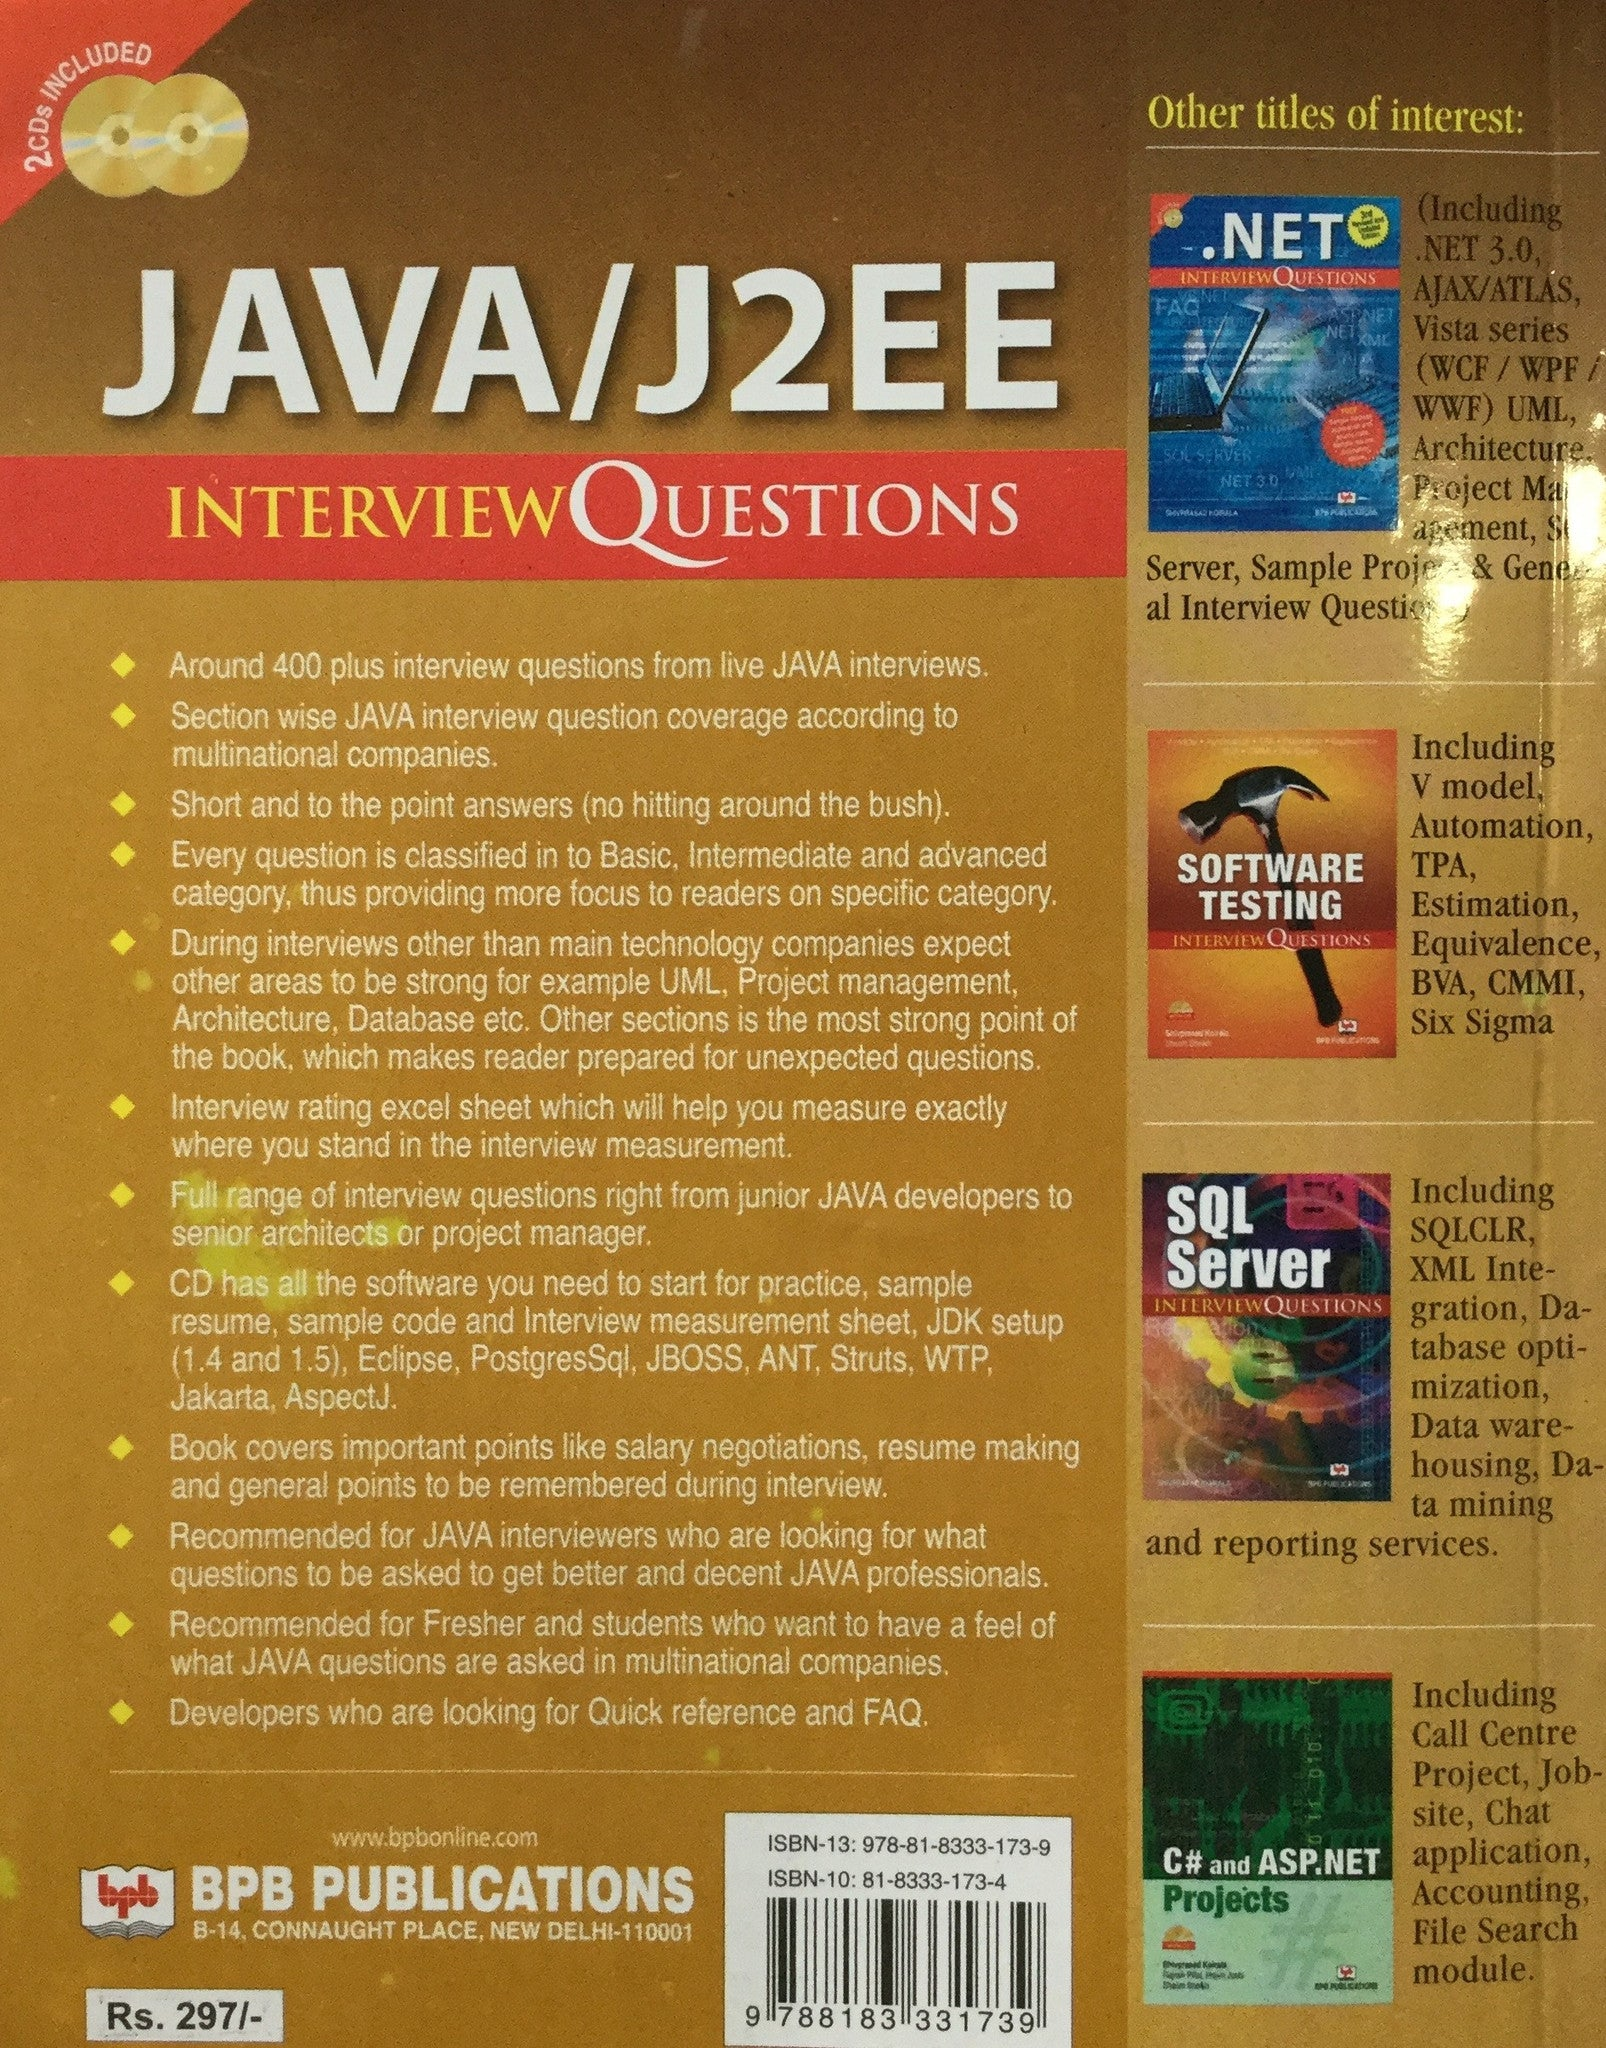 java j2ee interview questions by shivprasad koirala bpb publications java j2ee interview questions java j2ee interview questions books